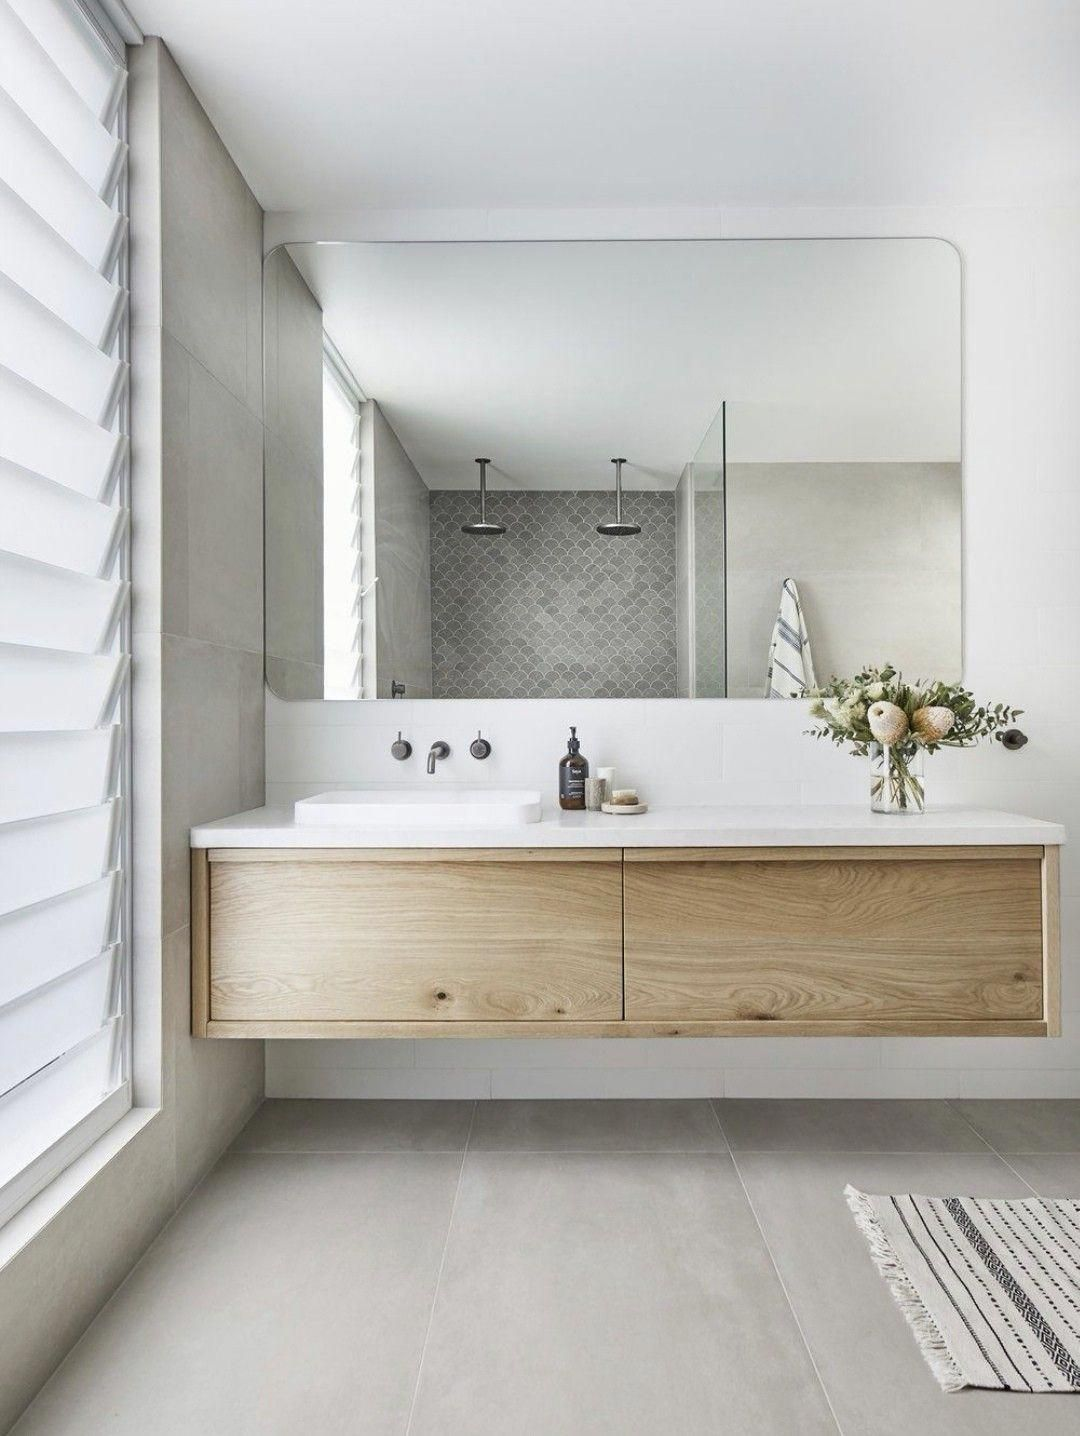 Mid Century Modern Bathroom Remodel Inspiration Moderndesignbathrooms Bathroom Trends Luxury Bathroom Master Baths Timber Vanity